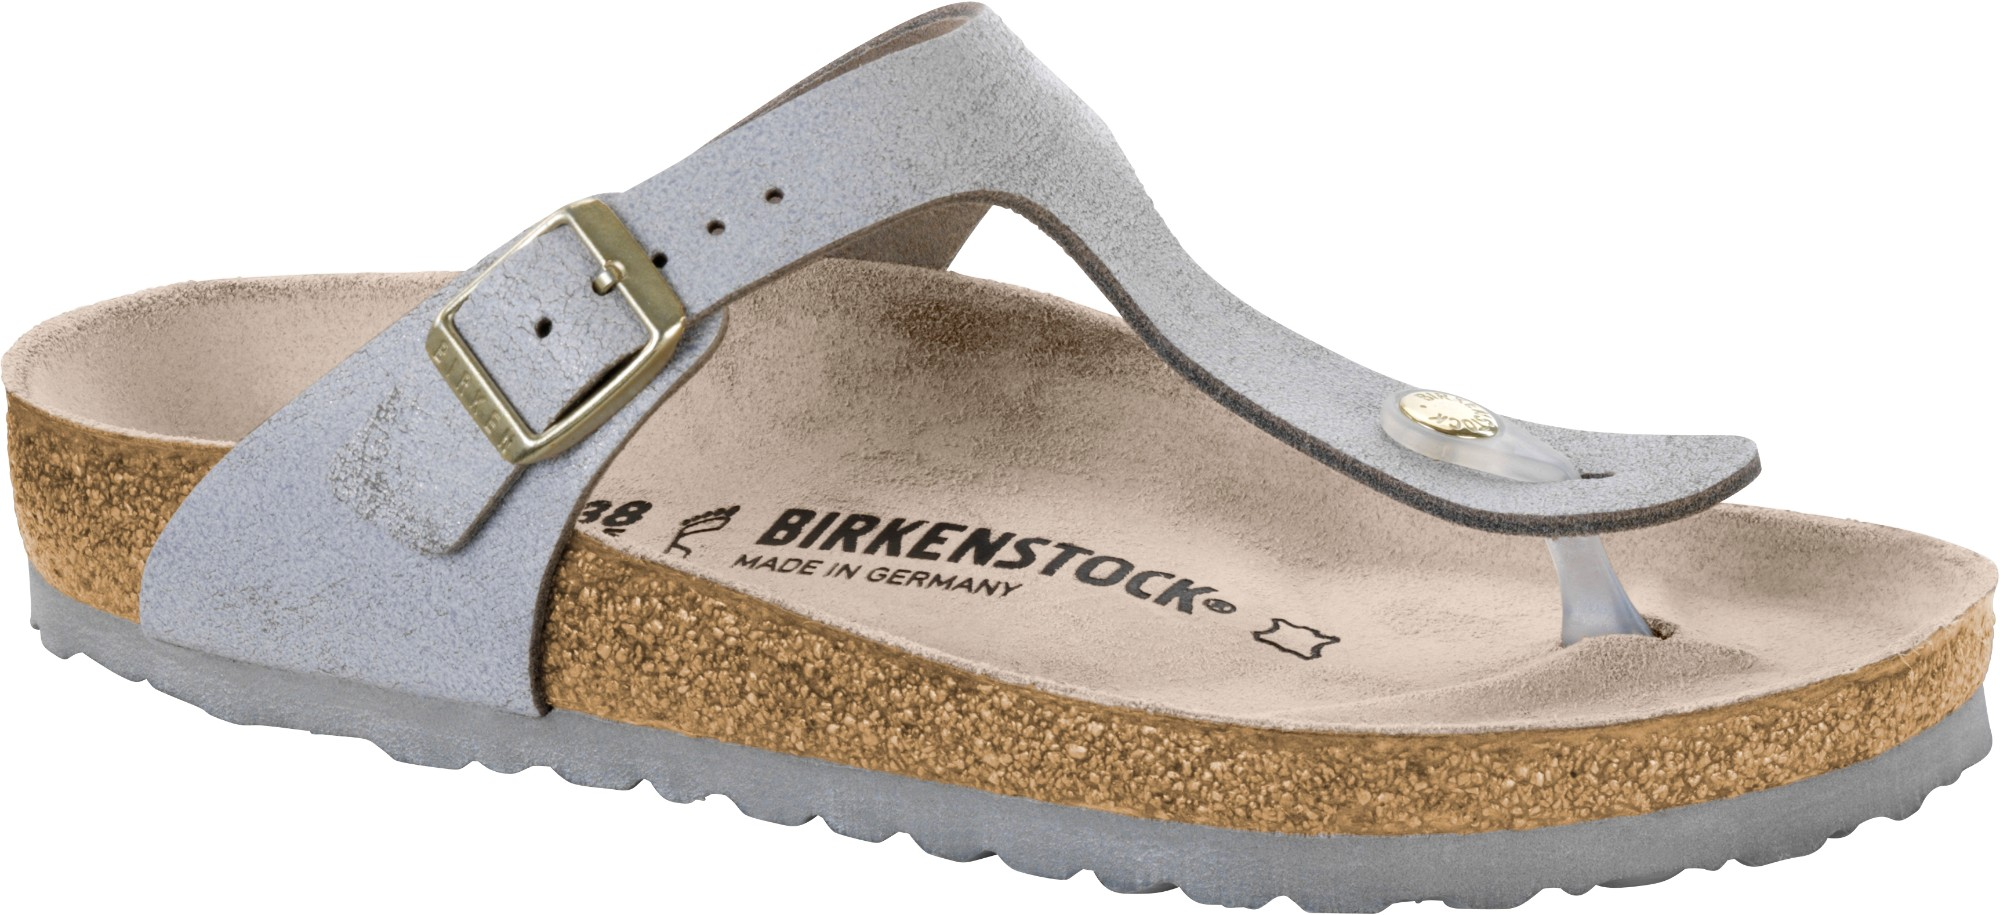 1549248e341 Birkenstock Gizeh Washed Metallic Leather Washed Metallic Blue Silver